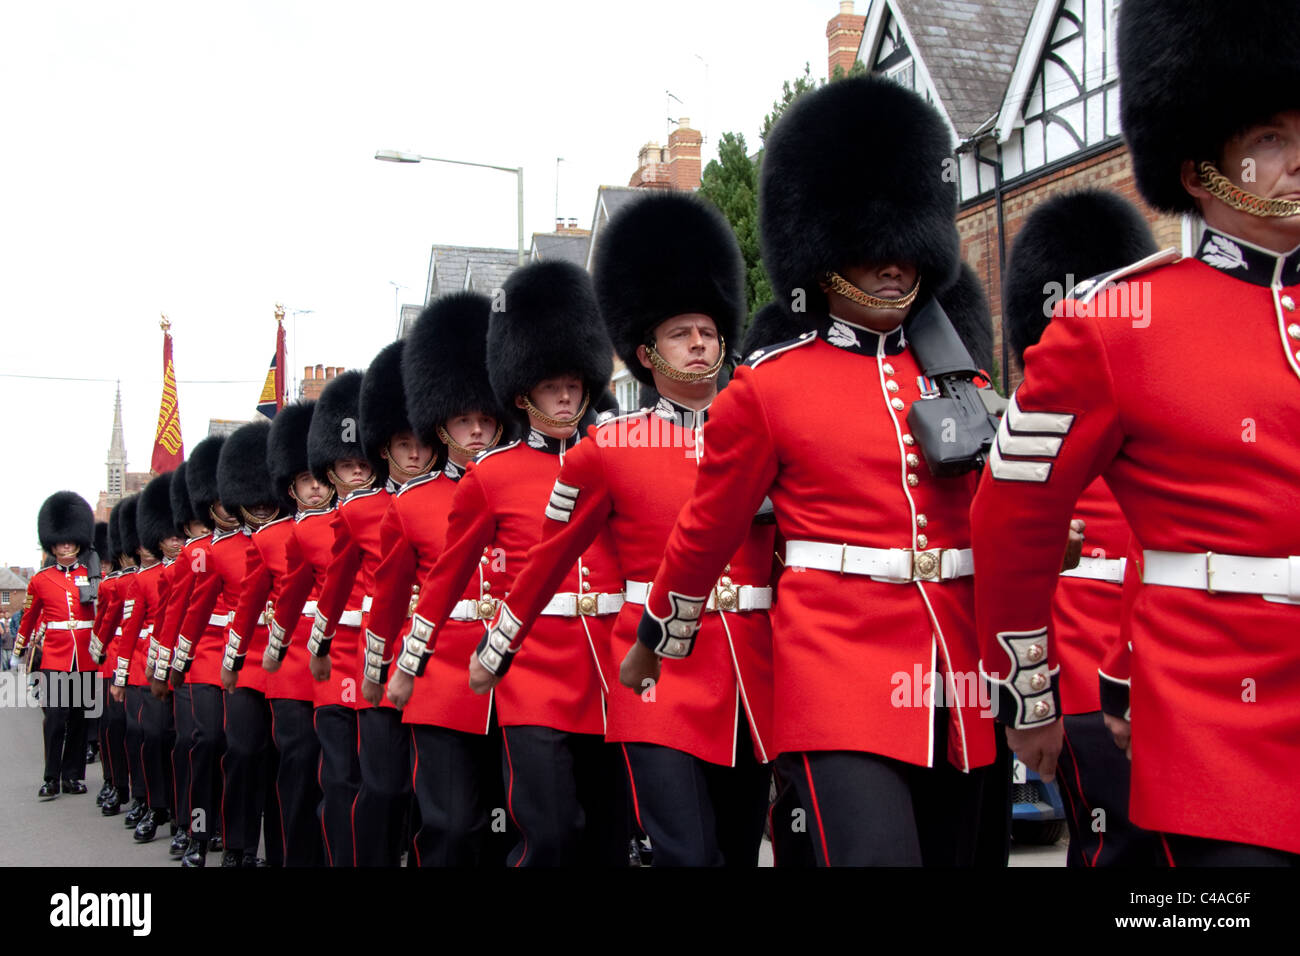 The 1st Battalion Scots Guards at the Freedom of Wantage Parade 21 May 2011. Three black soldiers in front rank. - Stock Image